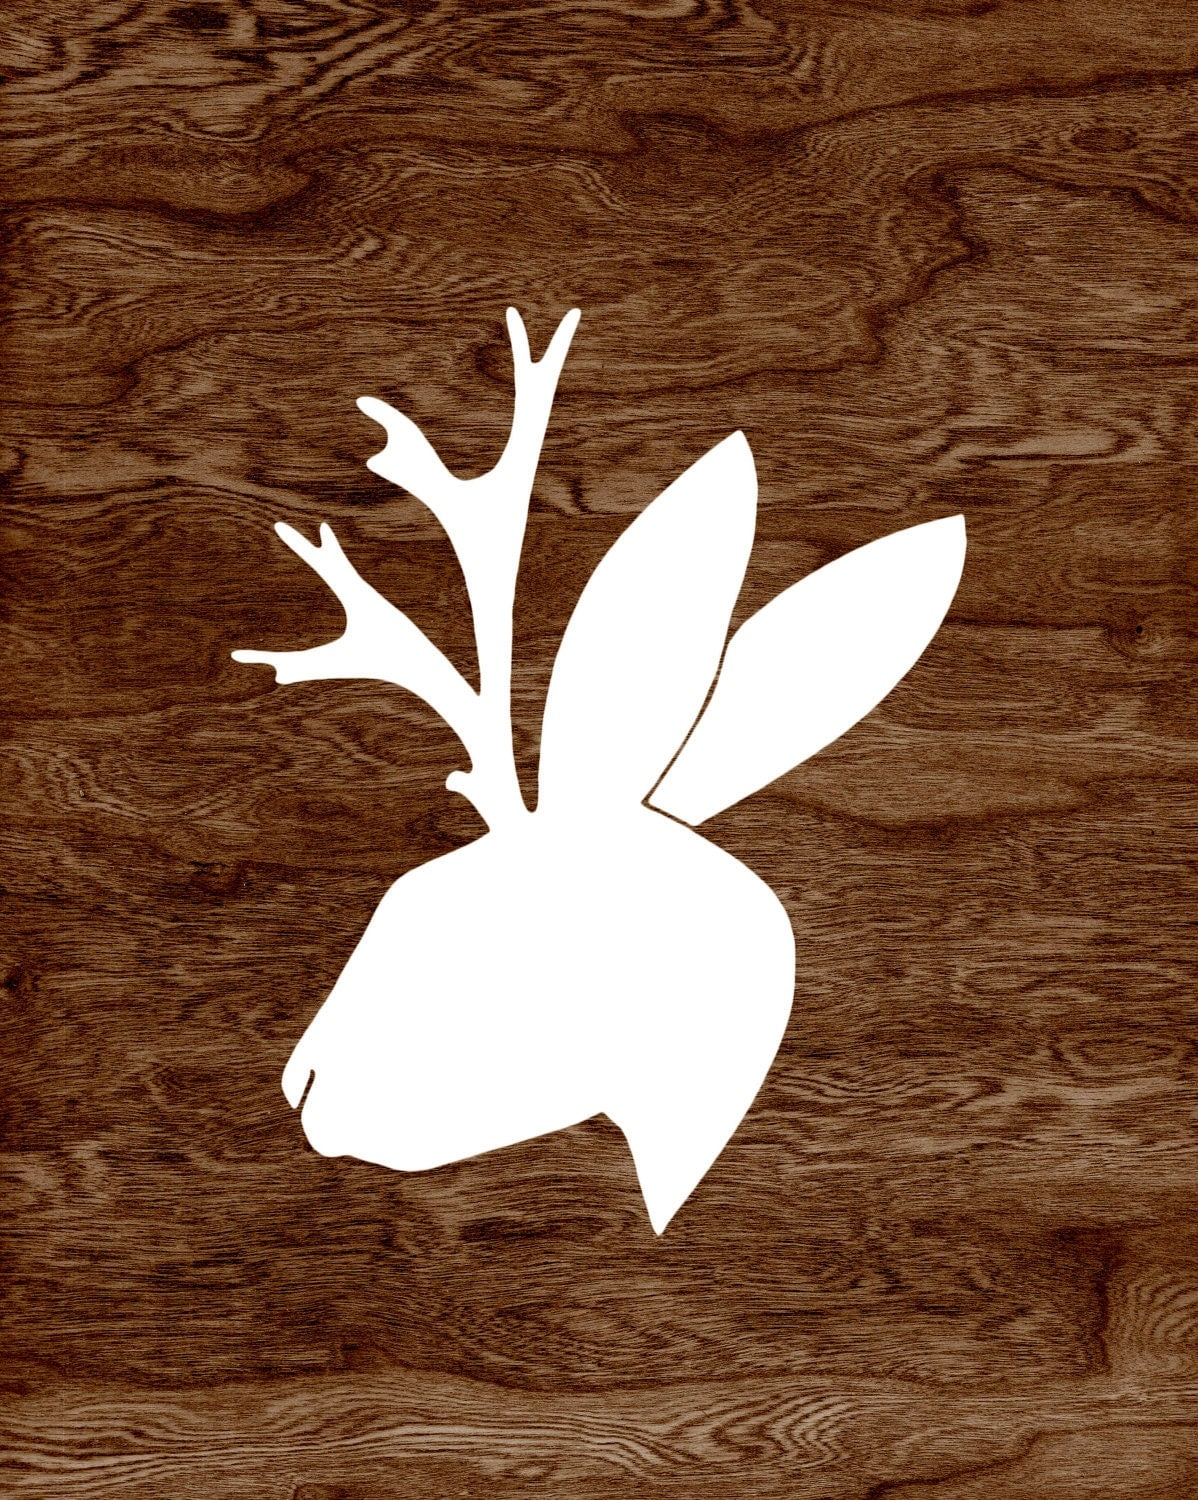 Jackalopes Are Real!